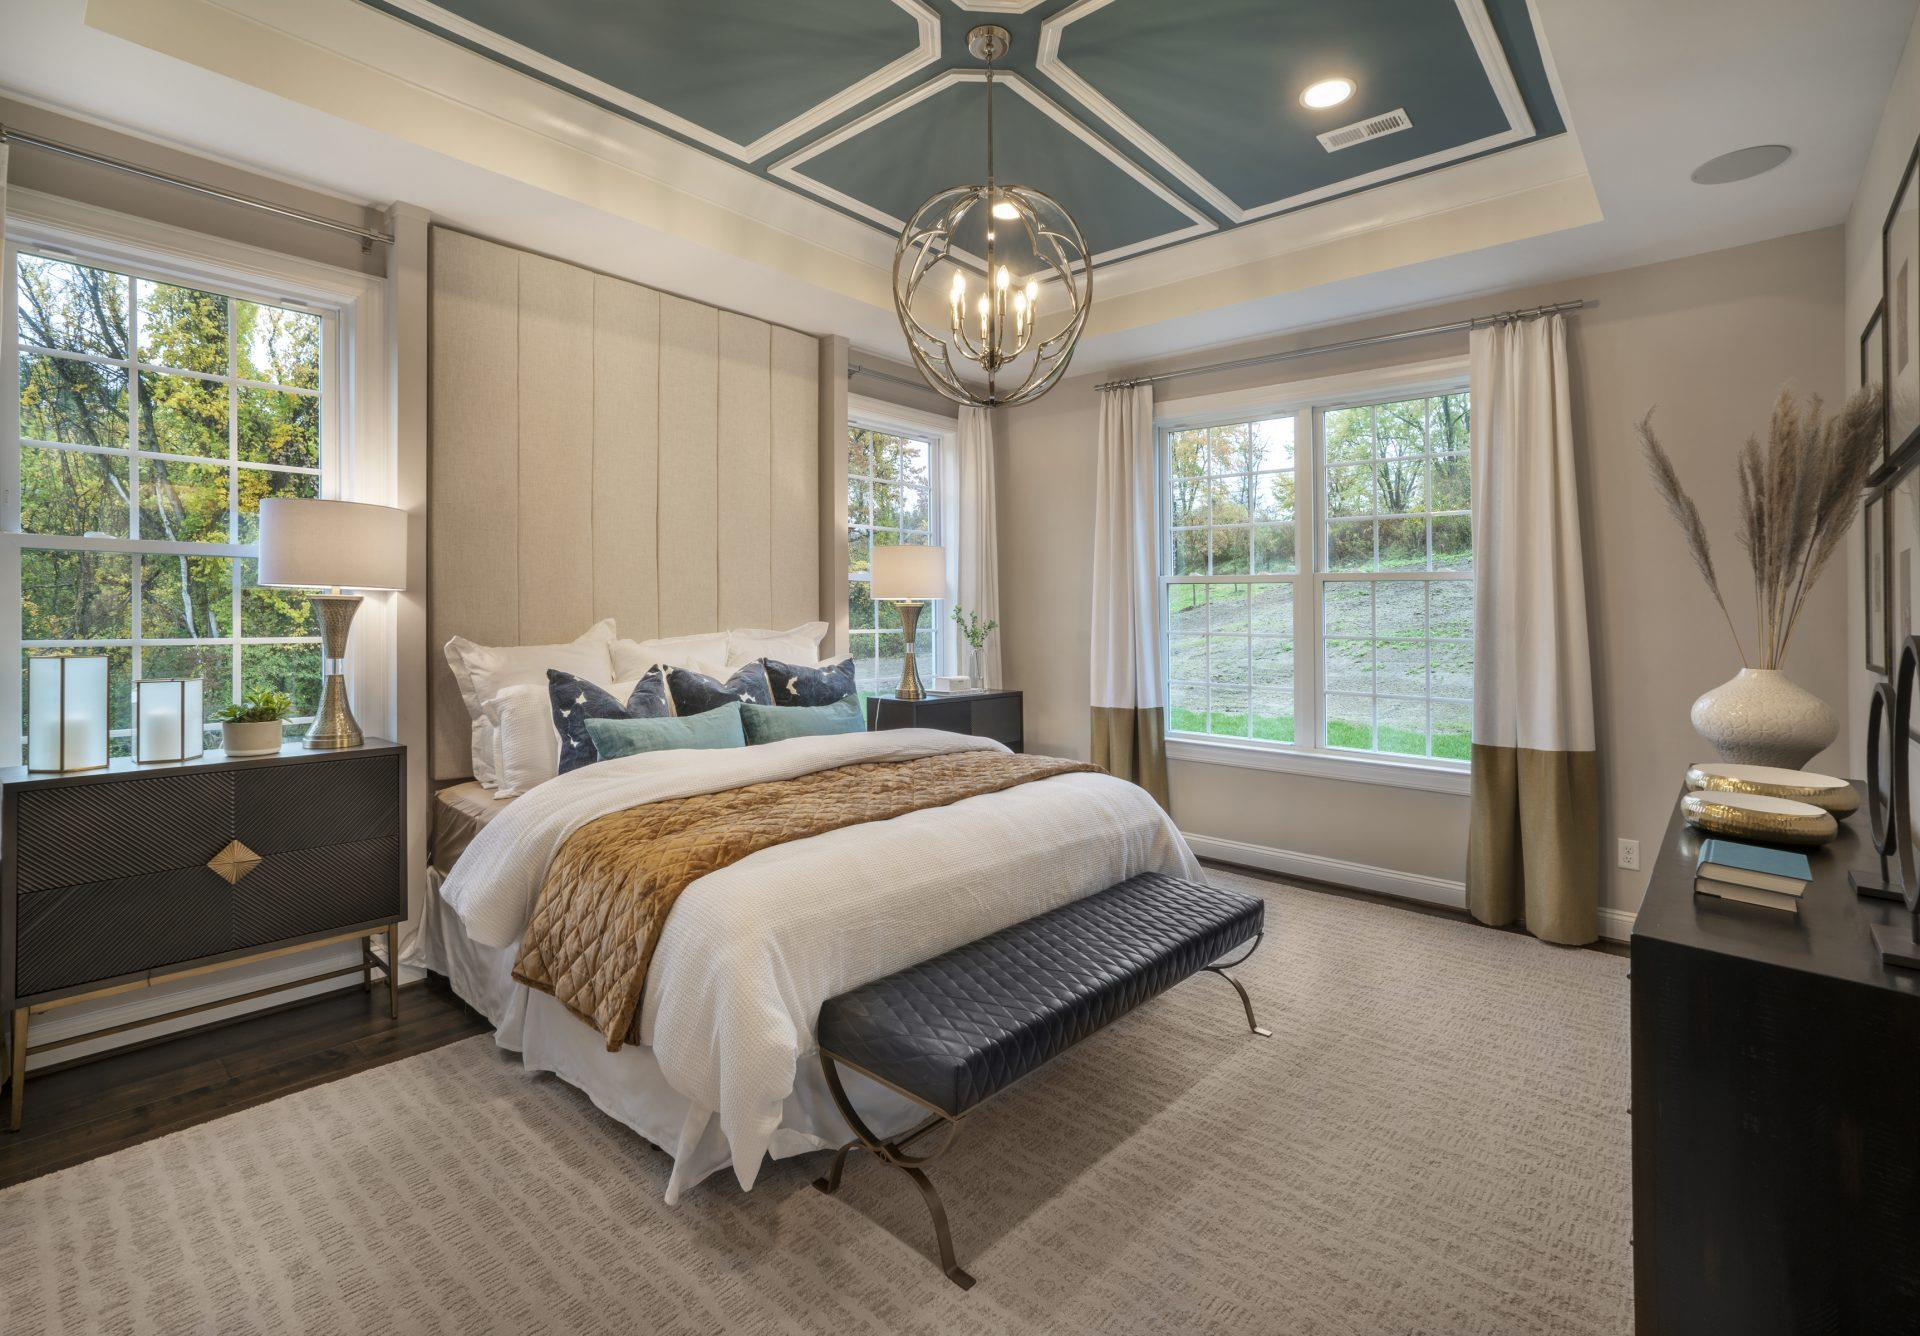 Bedroom featured in The Franklin By Traditions of America in Lancaster, PA